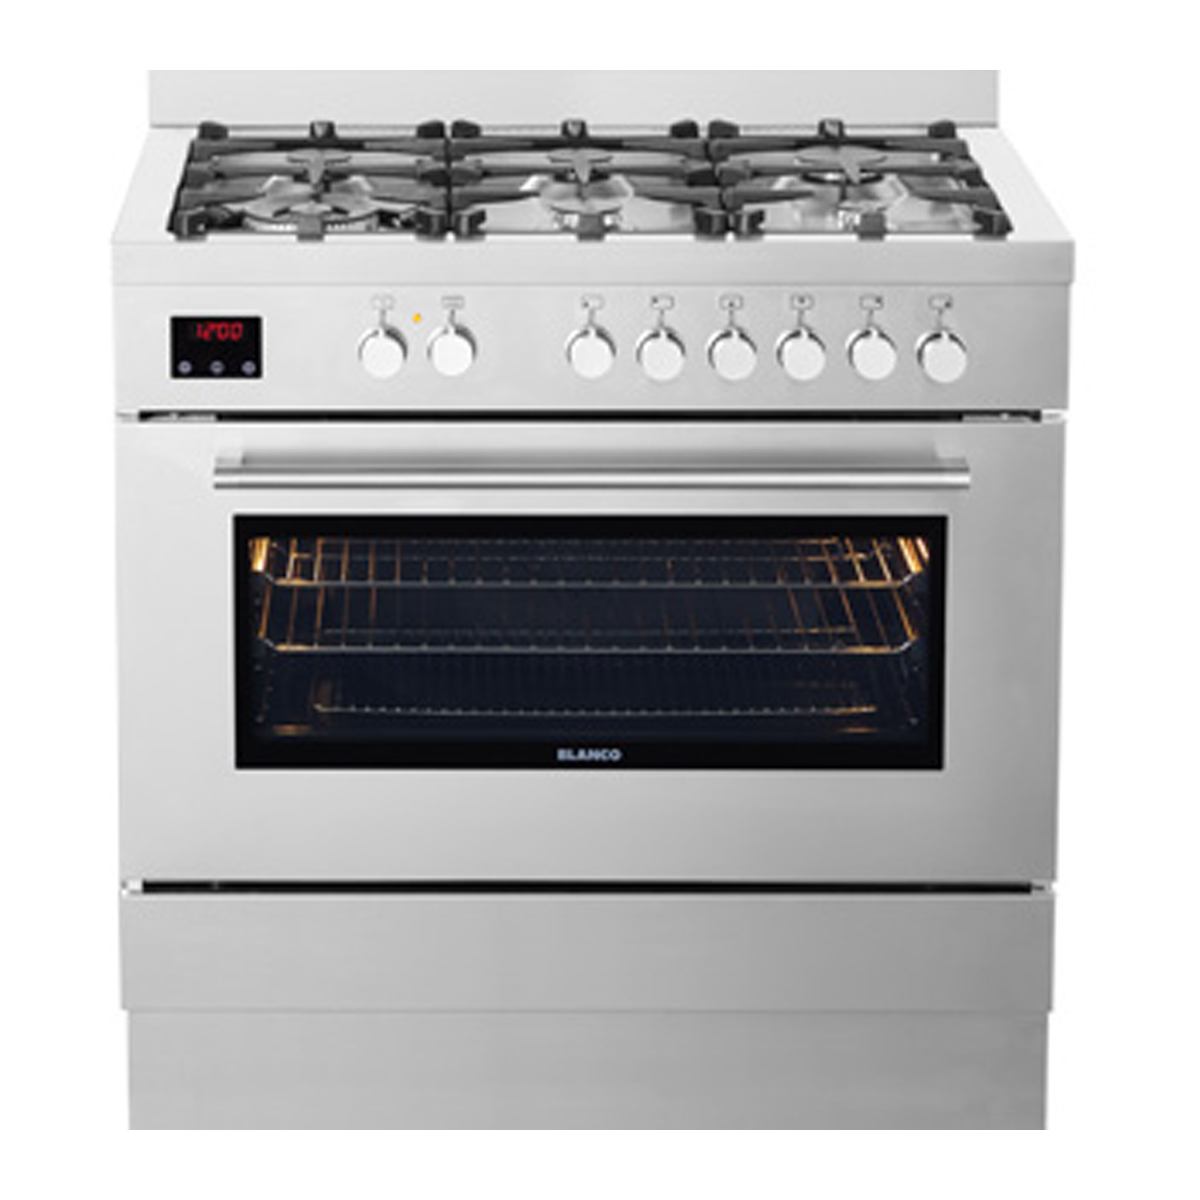 Blanco FD906WX 90cm Stainless Steel Freestanding Cooker